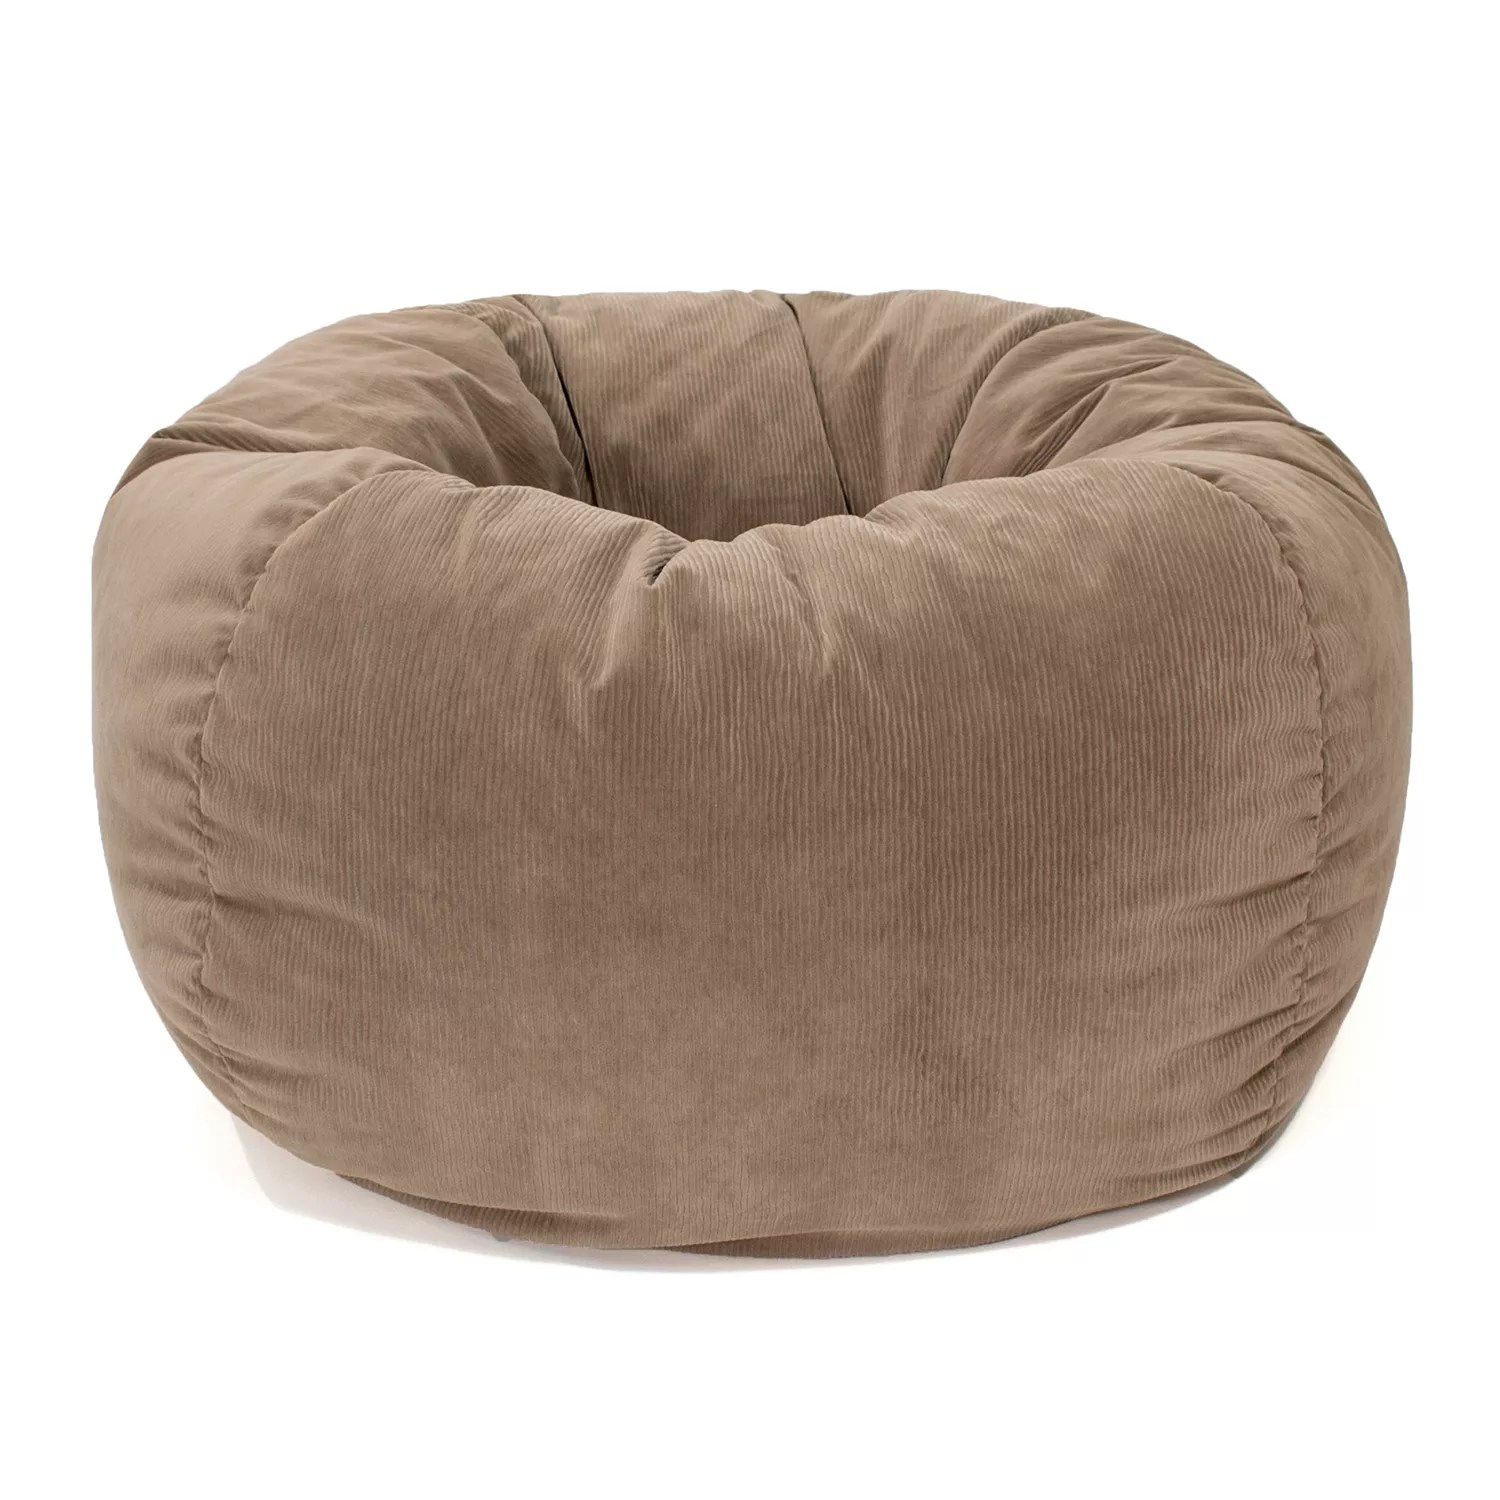 corduroy bean bag chair wholesale tables and chairs medium microfiber faux suede